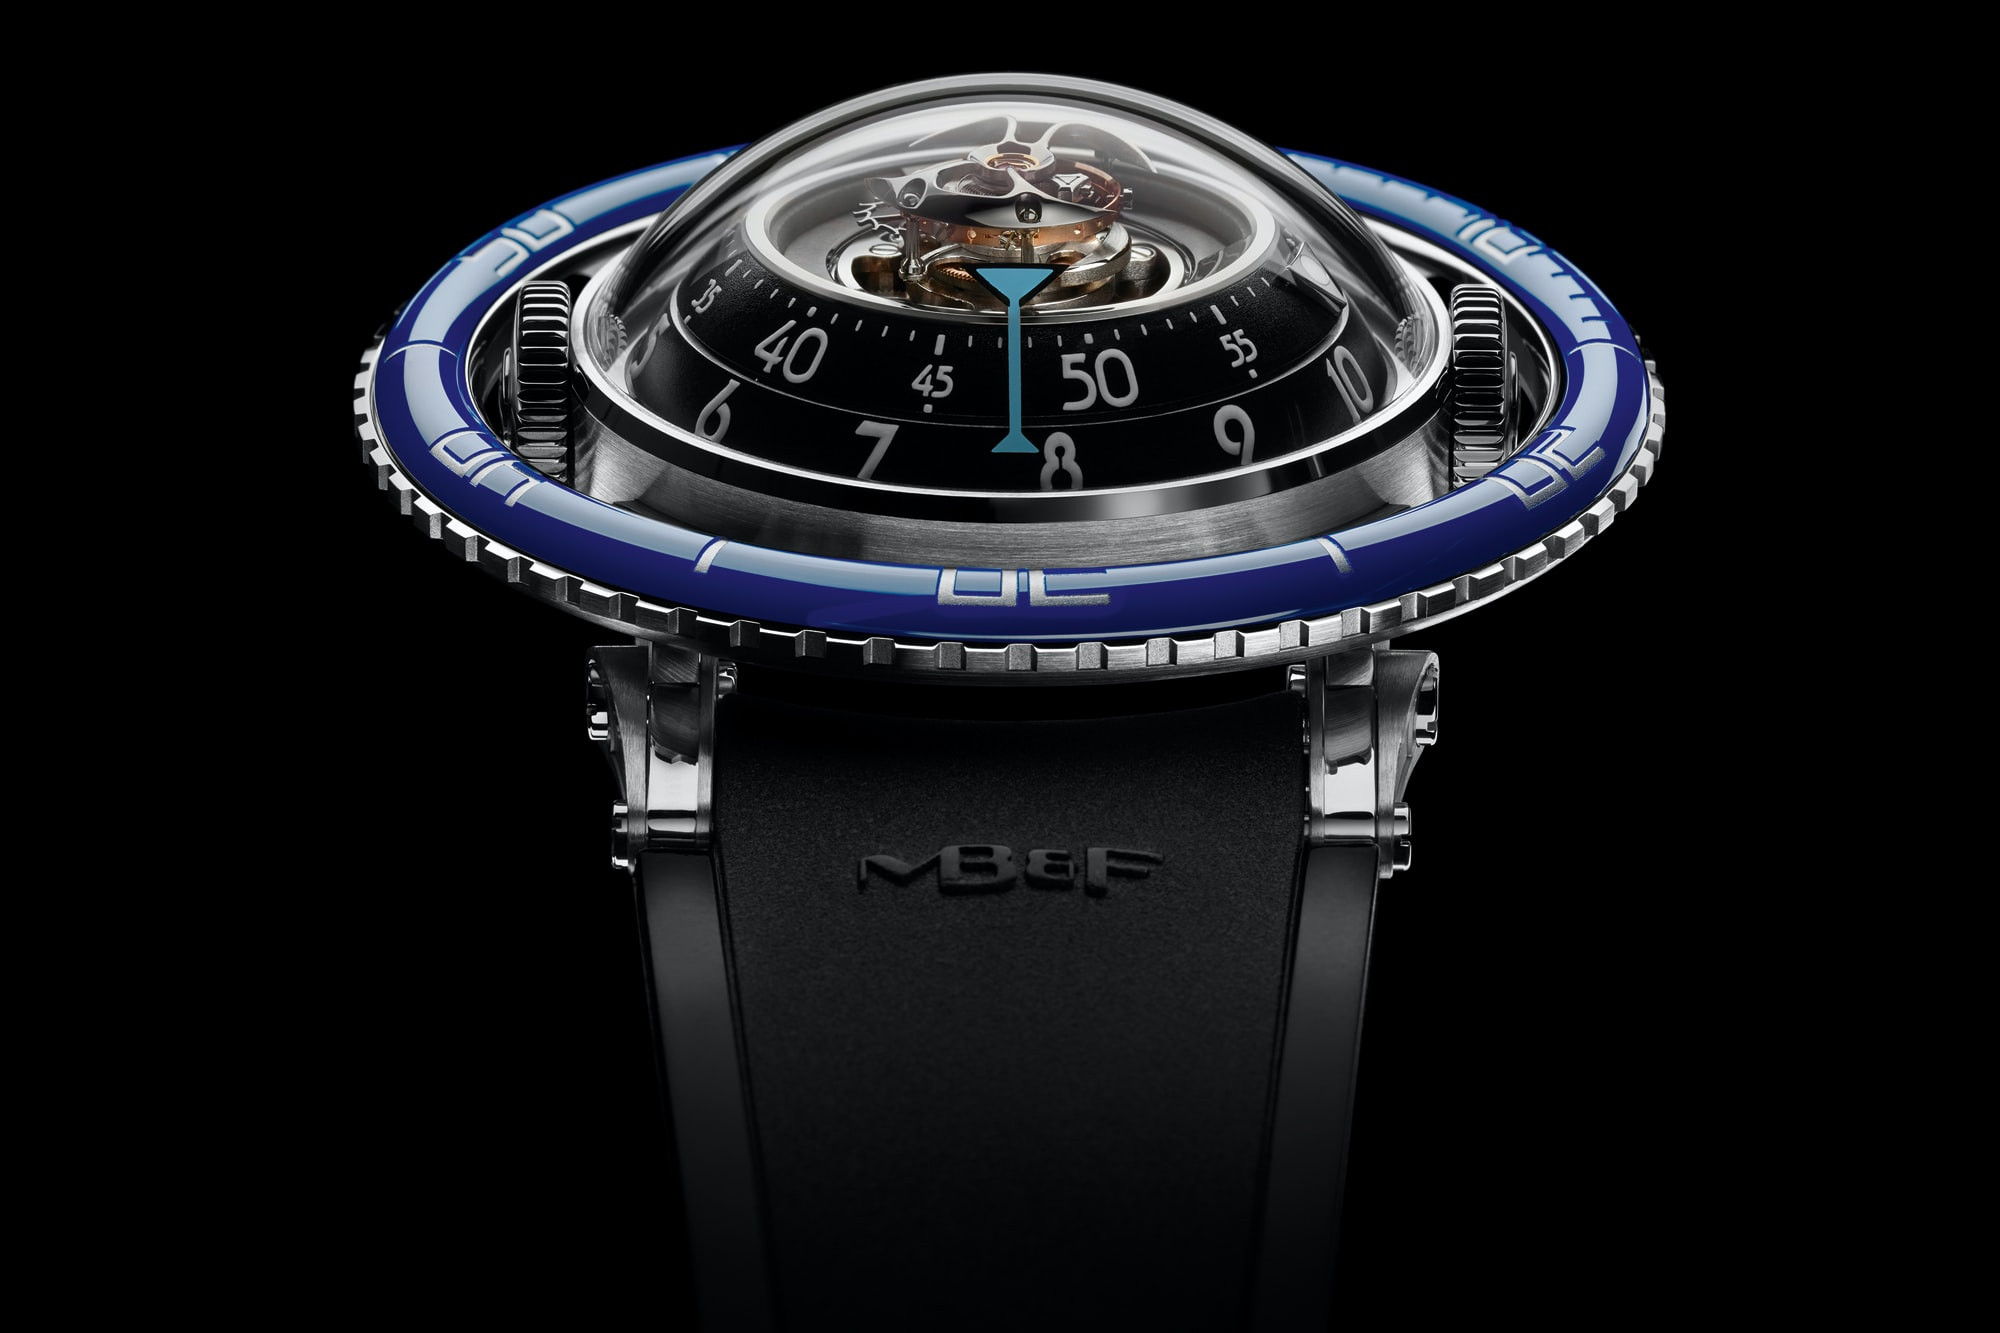 For its Horological Machine No. 7, MB&F decided to create its very first dive watch.